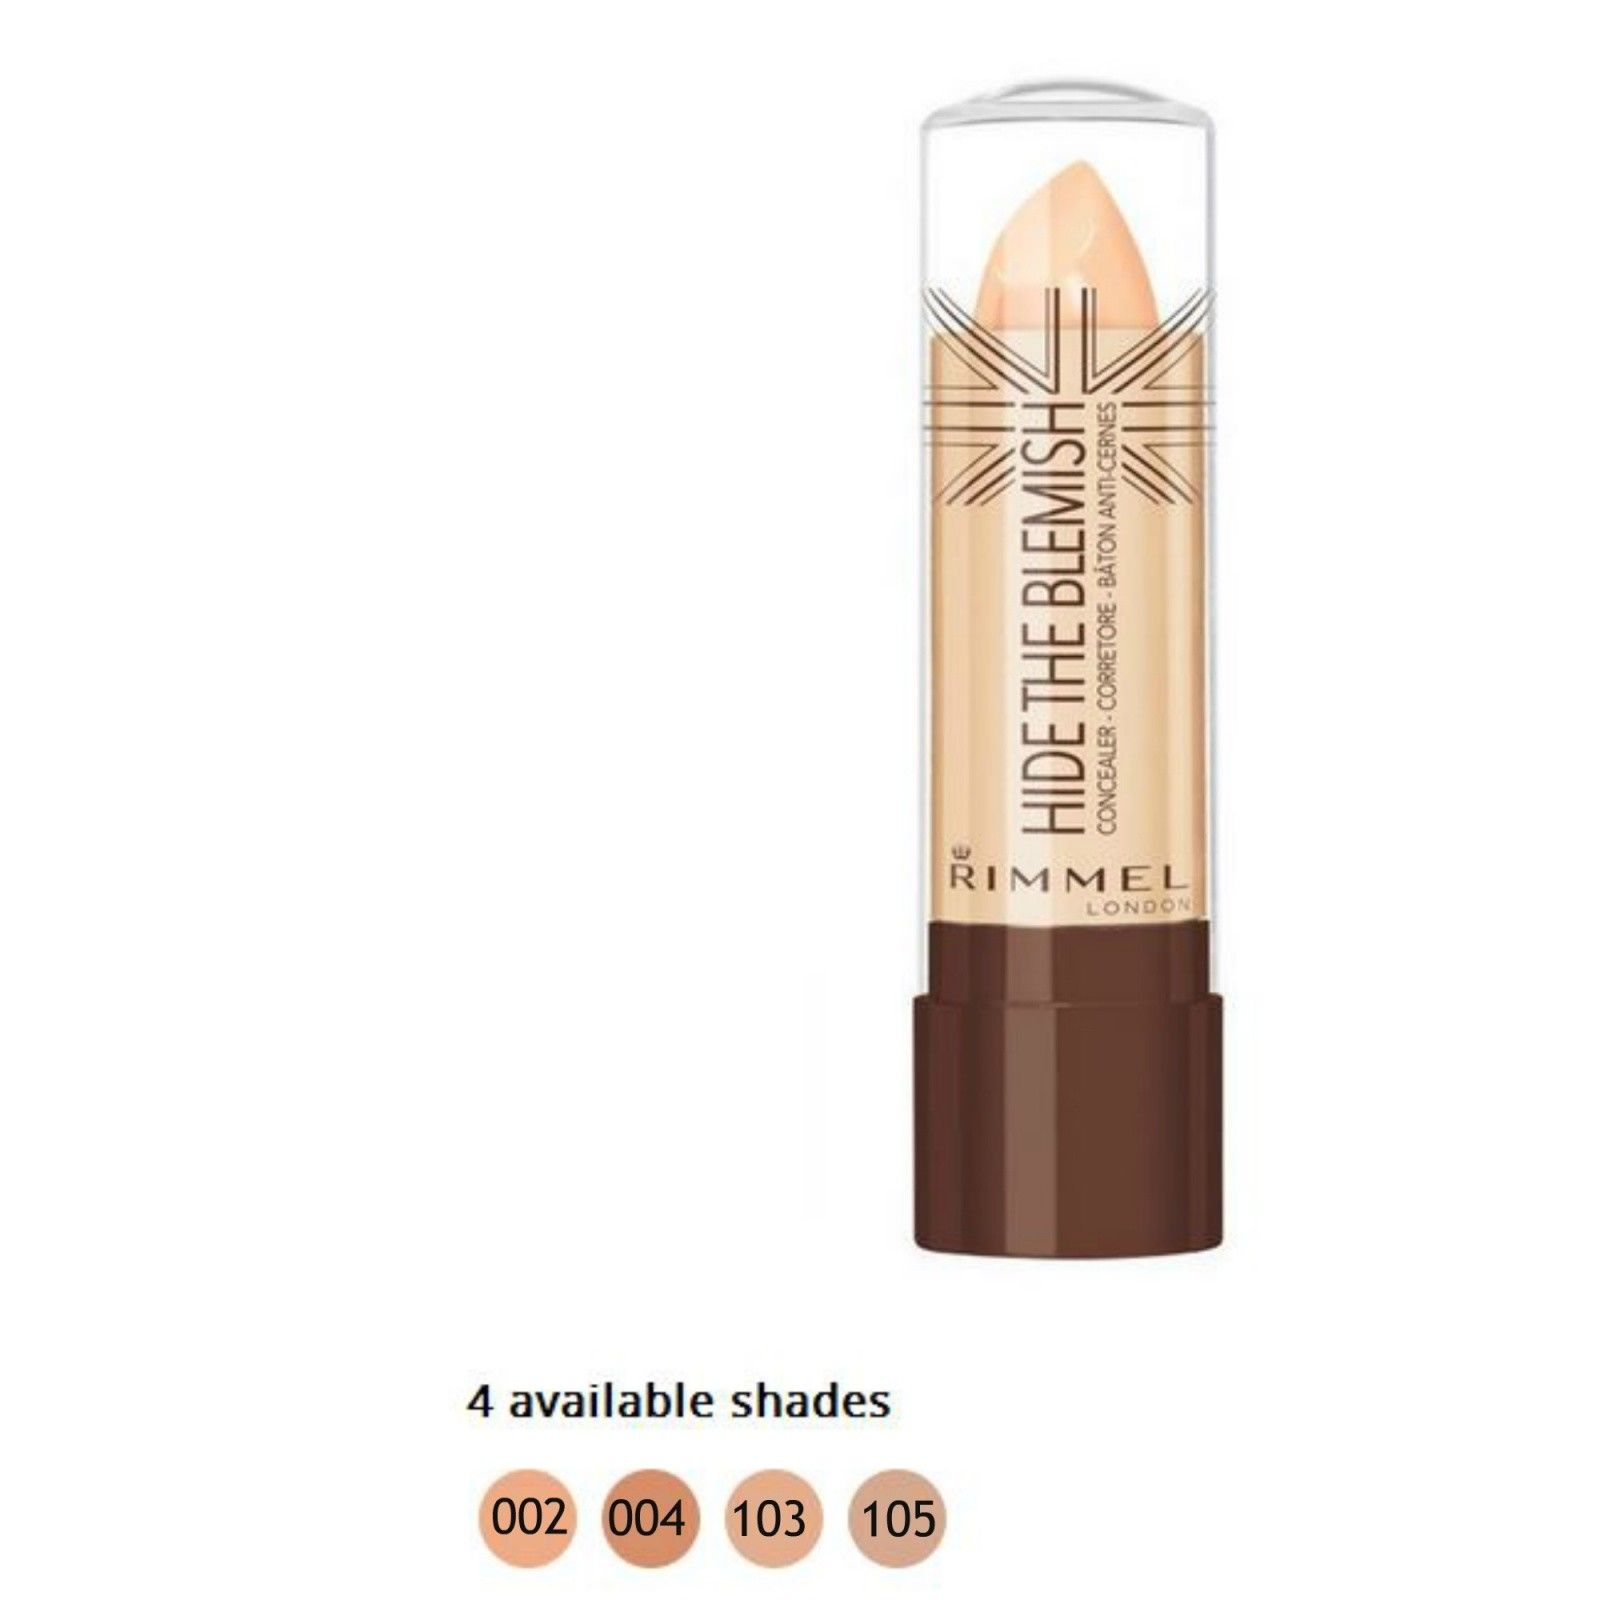 RIMMEL HIDE THE BLEMISH CORRETTORE IN STICK 4,5g 103 SOFT HONEY